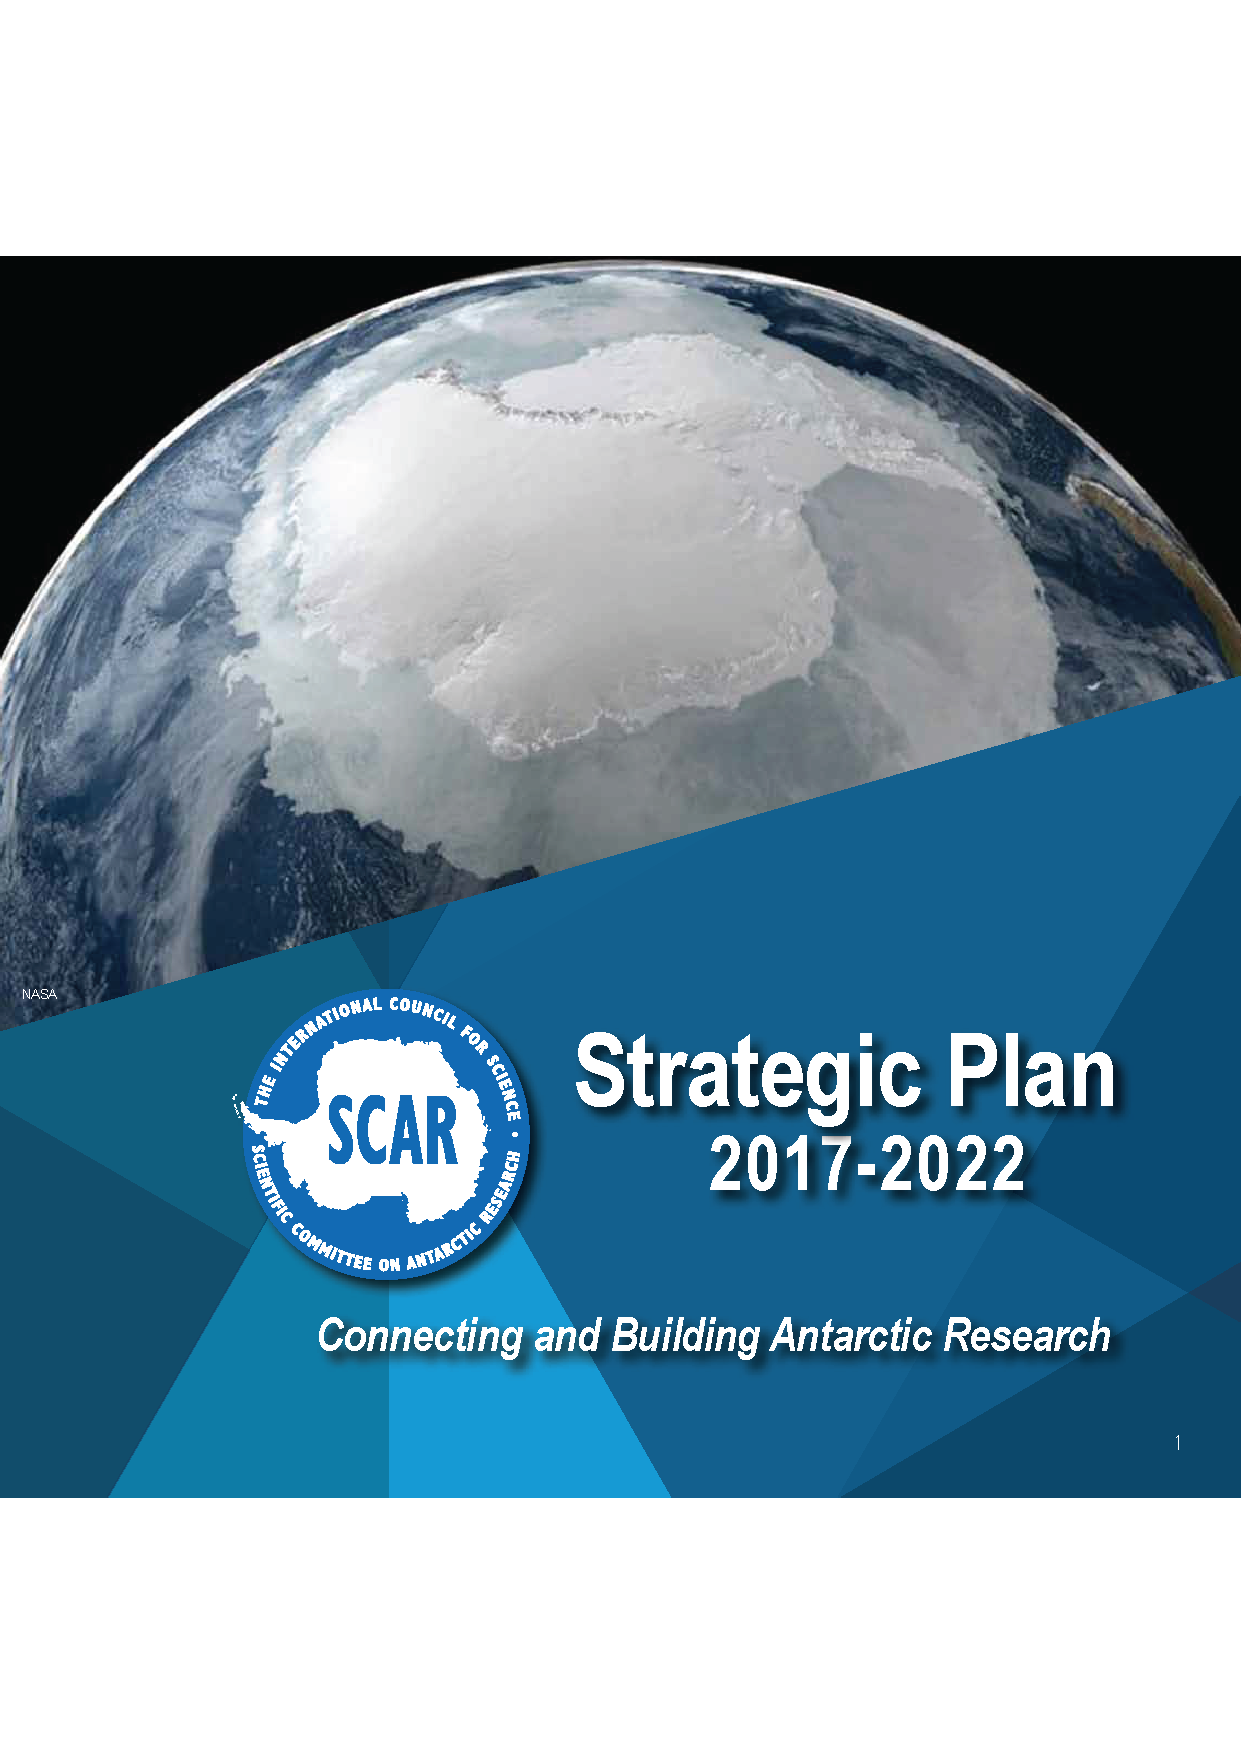 SCAR Strategic Plan 2017-2022: Connecting and Building Antarctic Research